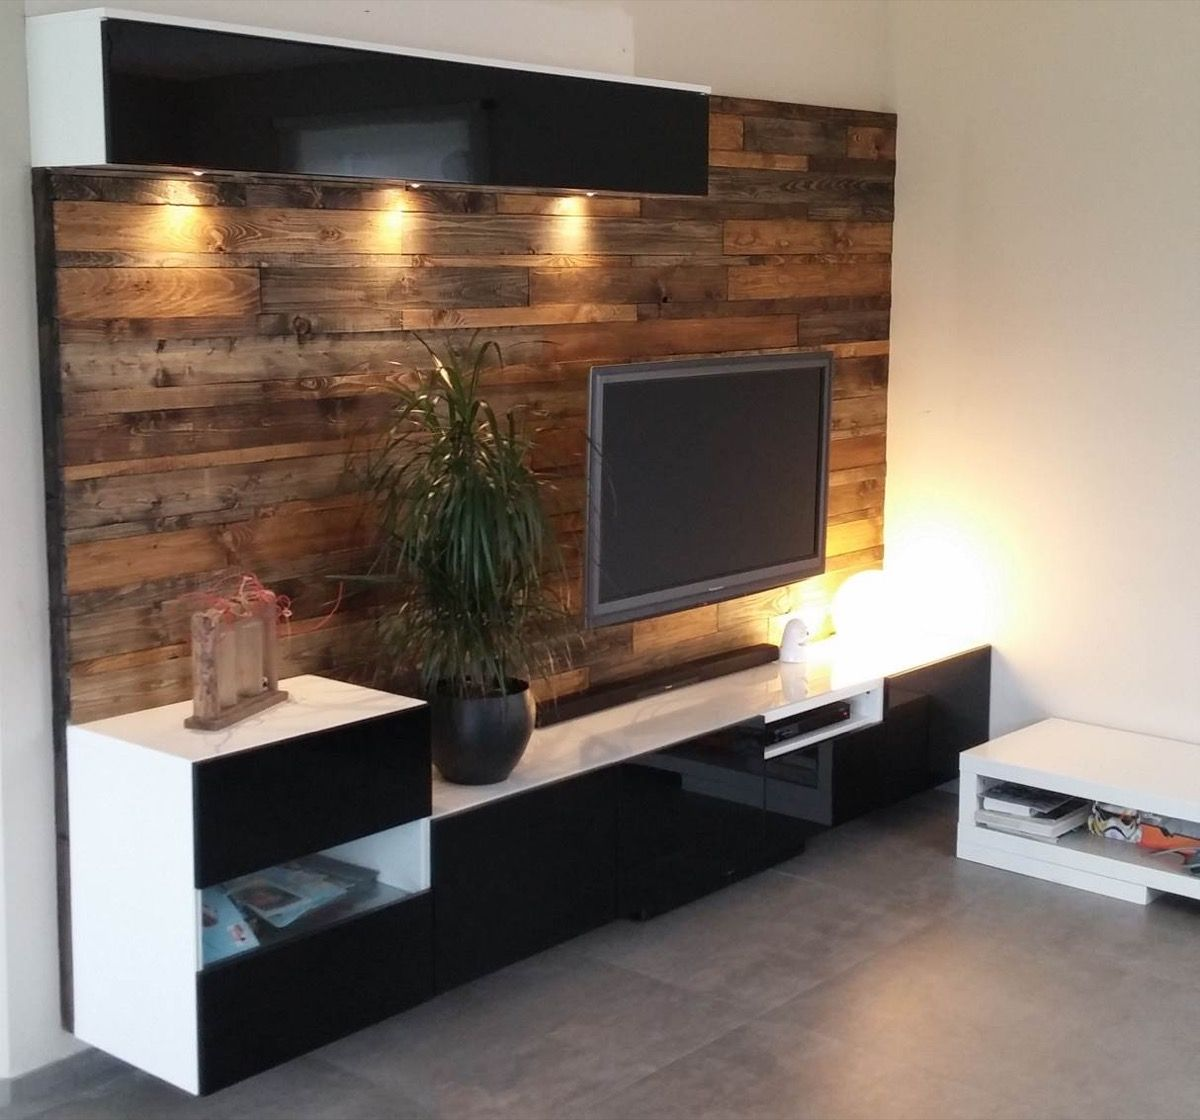 best media center with wood panels ikea hacks pinterest woods living rooms and ikea hack. Black Bedroom Furniture Sets. Home Design Ideas